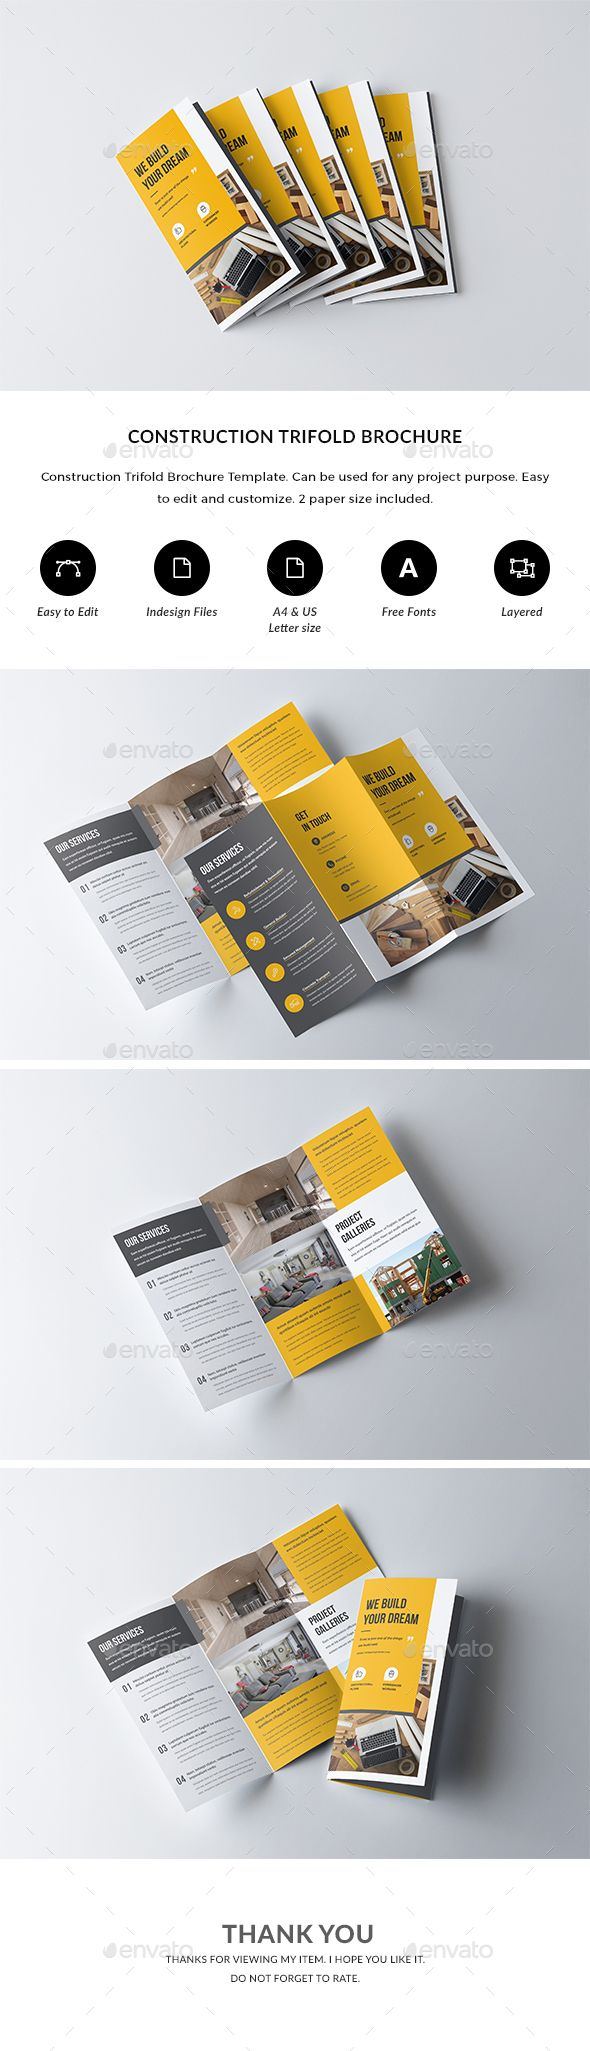 Construction Trifold Brochure — #plumbing #brochure architecture • Download ➝ https://graphicriver.net/item/construction-trifold-brochure/21248016?ref=pxcr